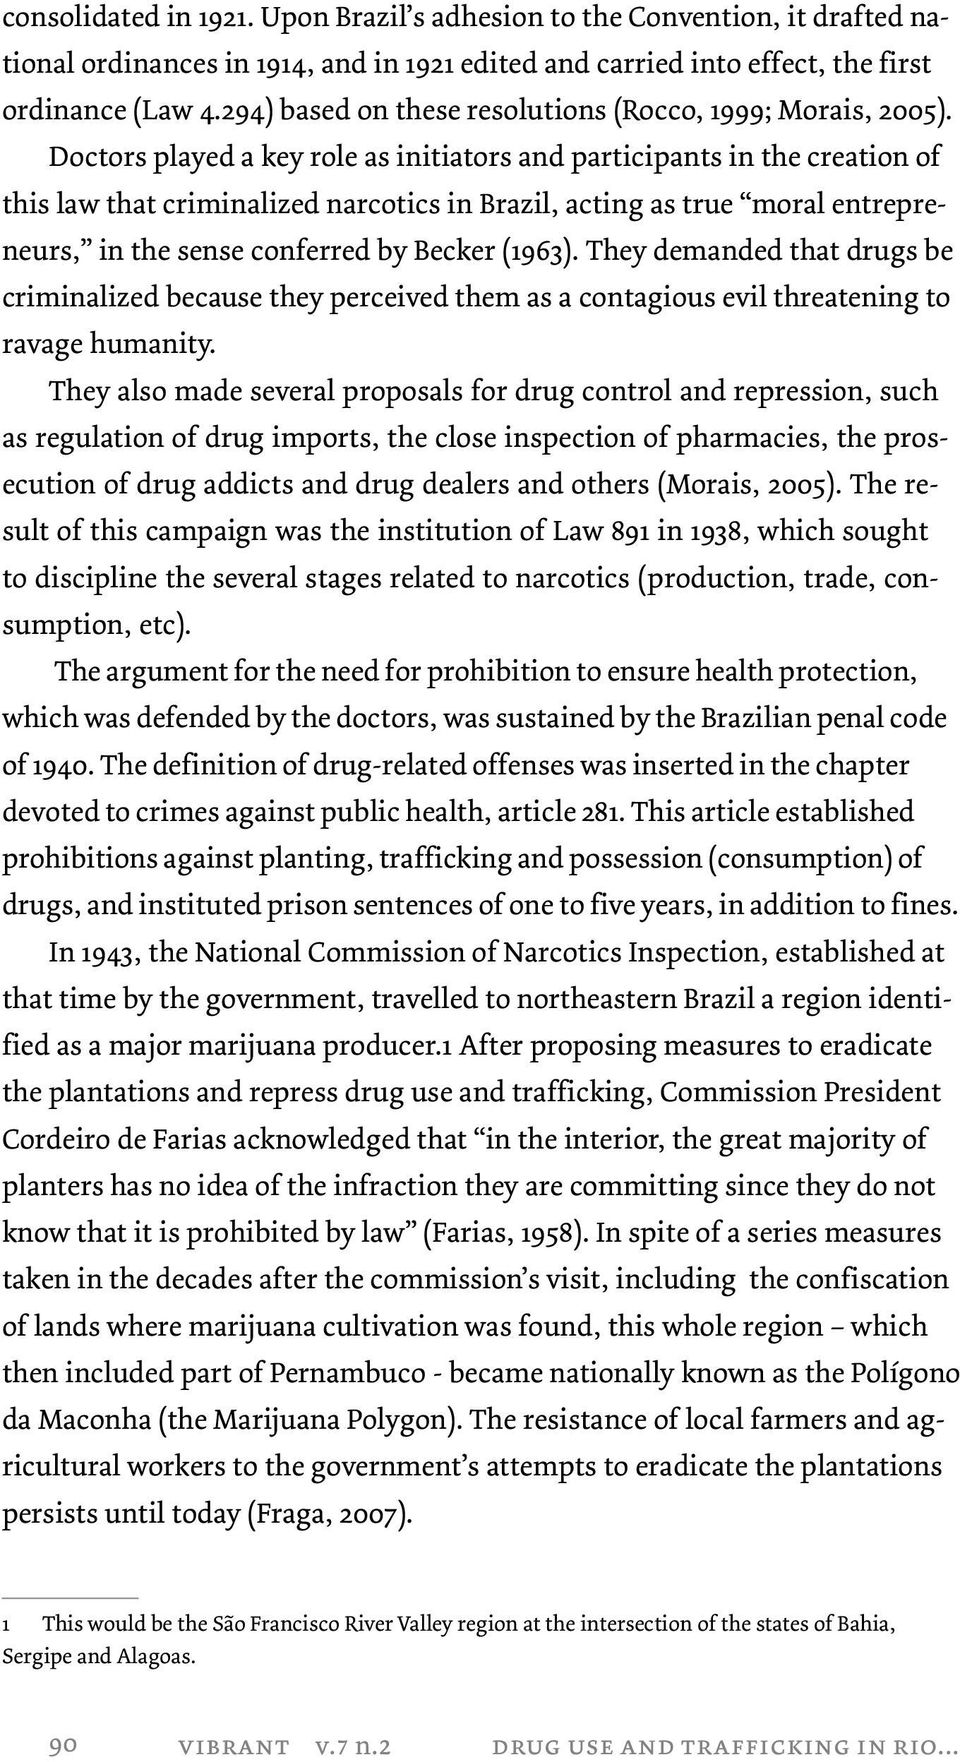 Doctors played a key role as initiators and participants in the creation of this law that criminalized narcotics in Brazil, acting as true moral entrepreneurs, in the sense conferred by Becker (1963).